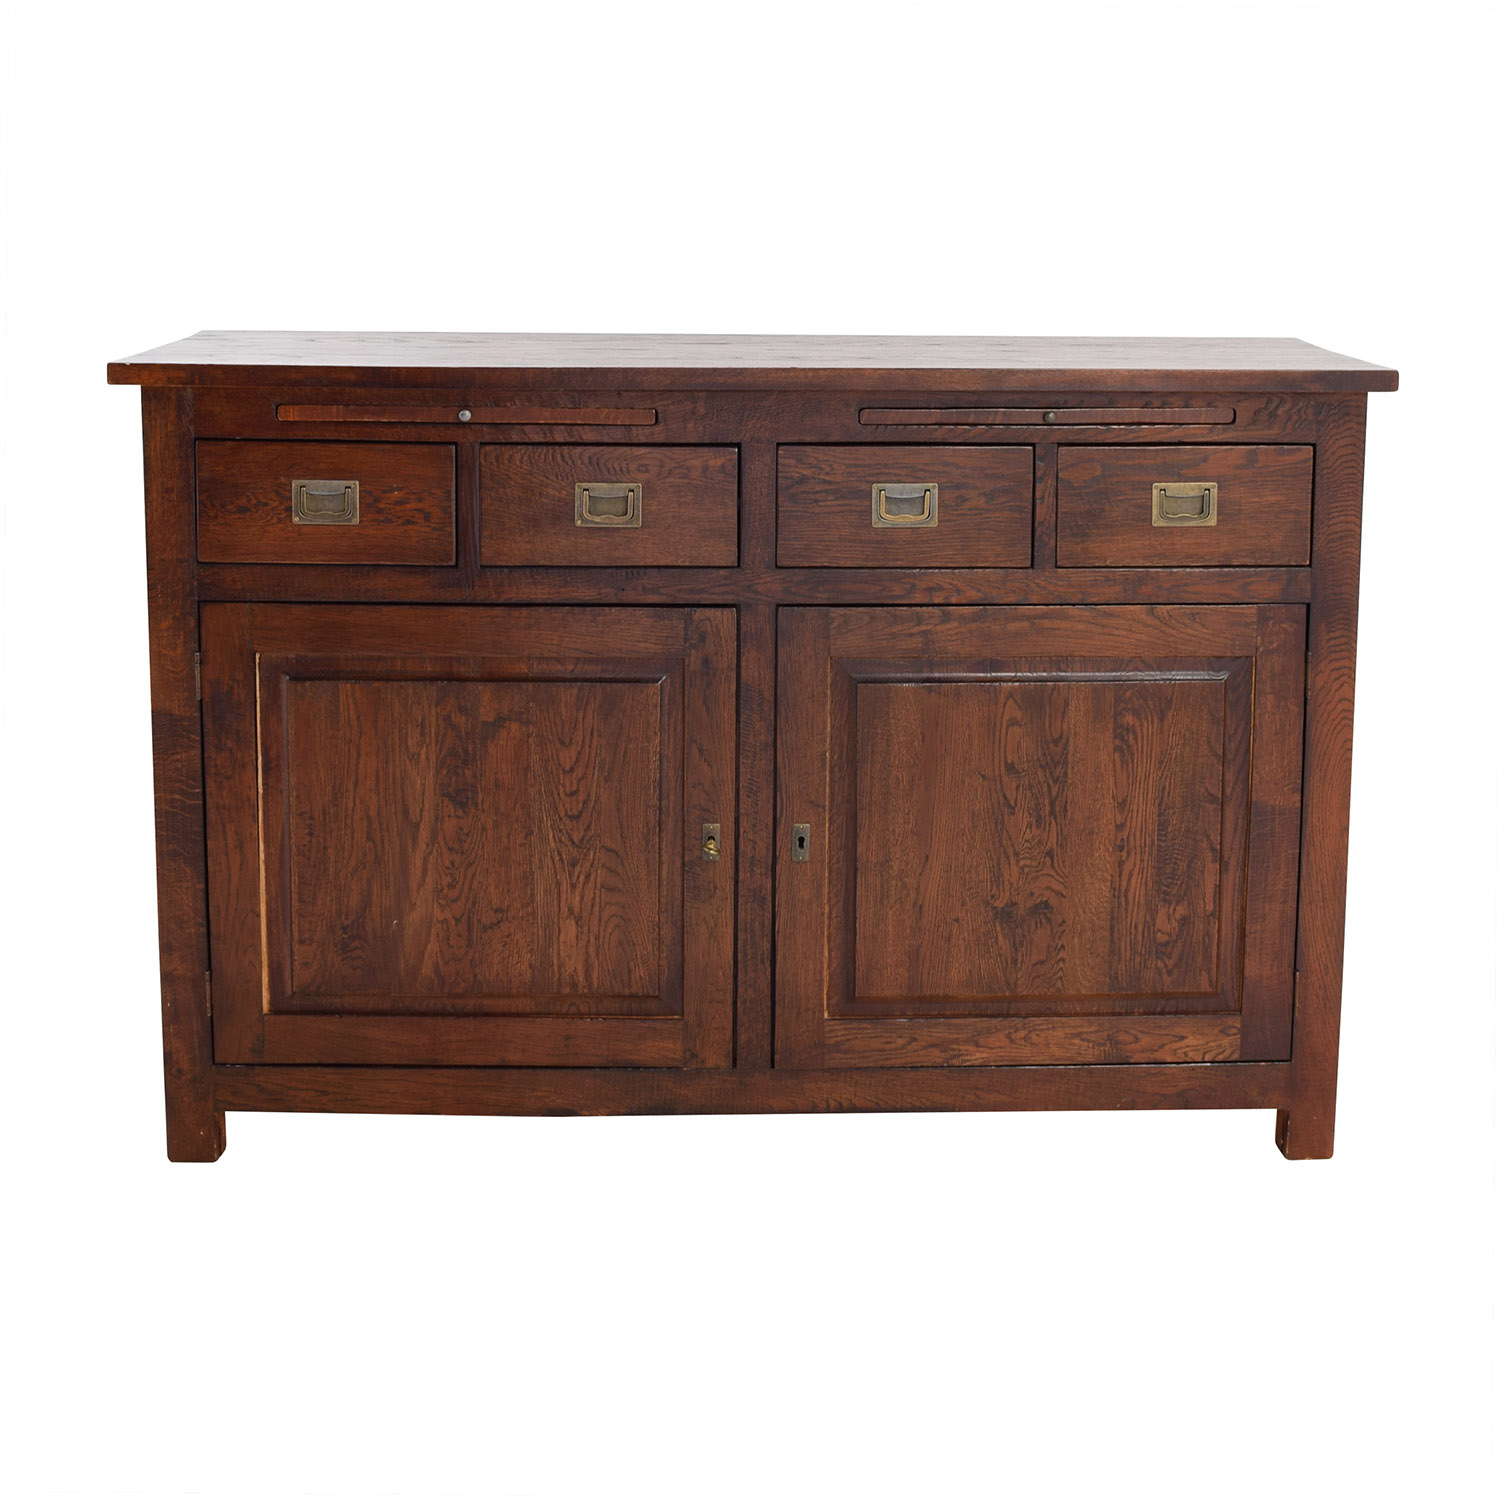 Crate and Barrel Crate & Barrel Bordeaux Buffet Sideboard Storage